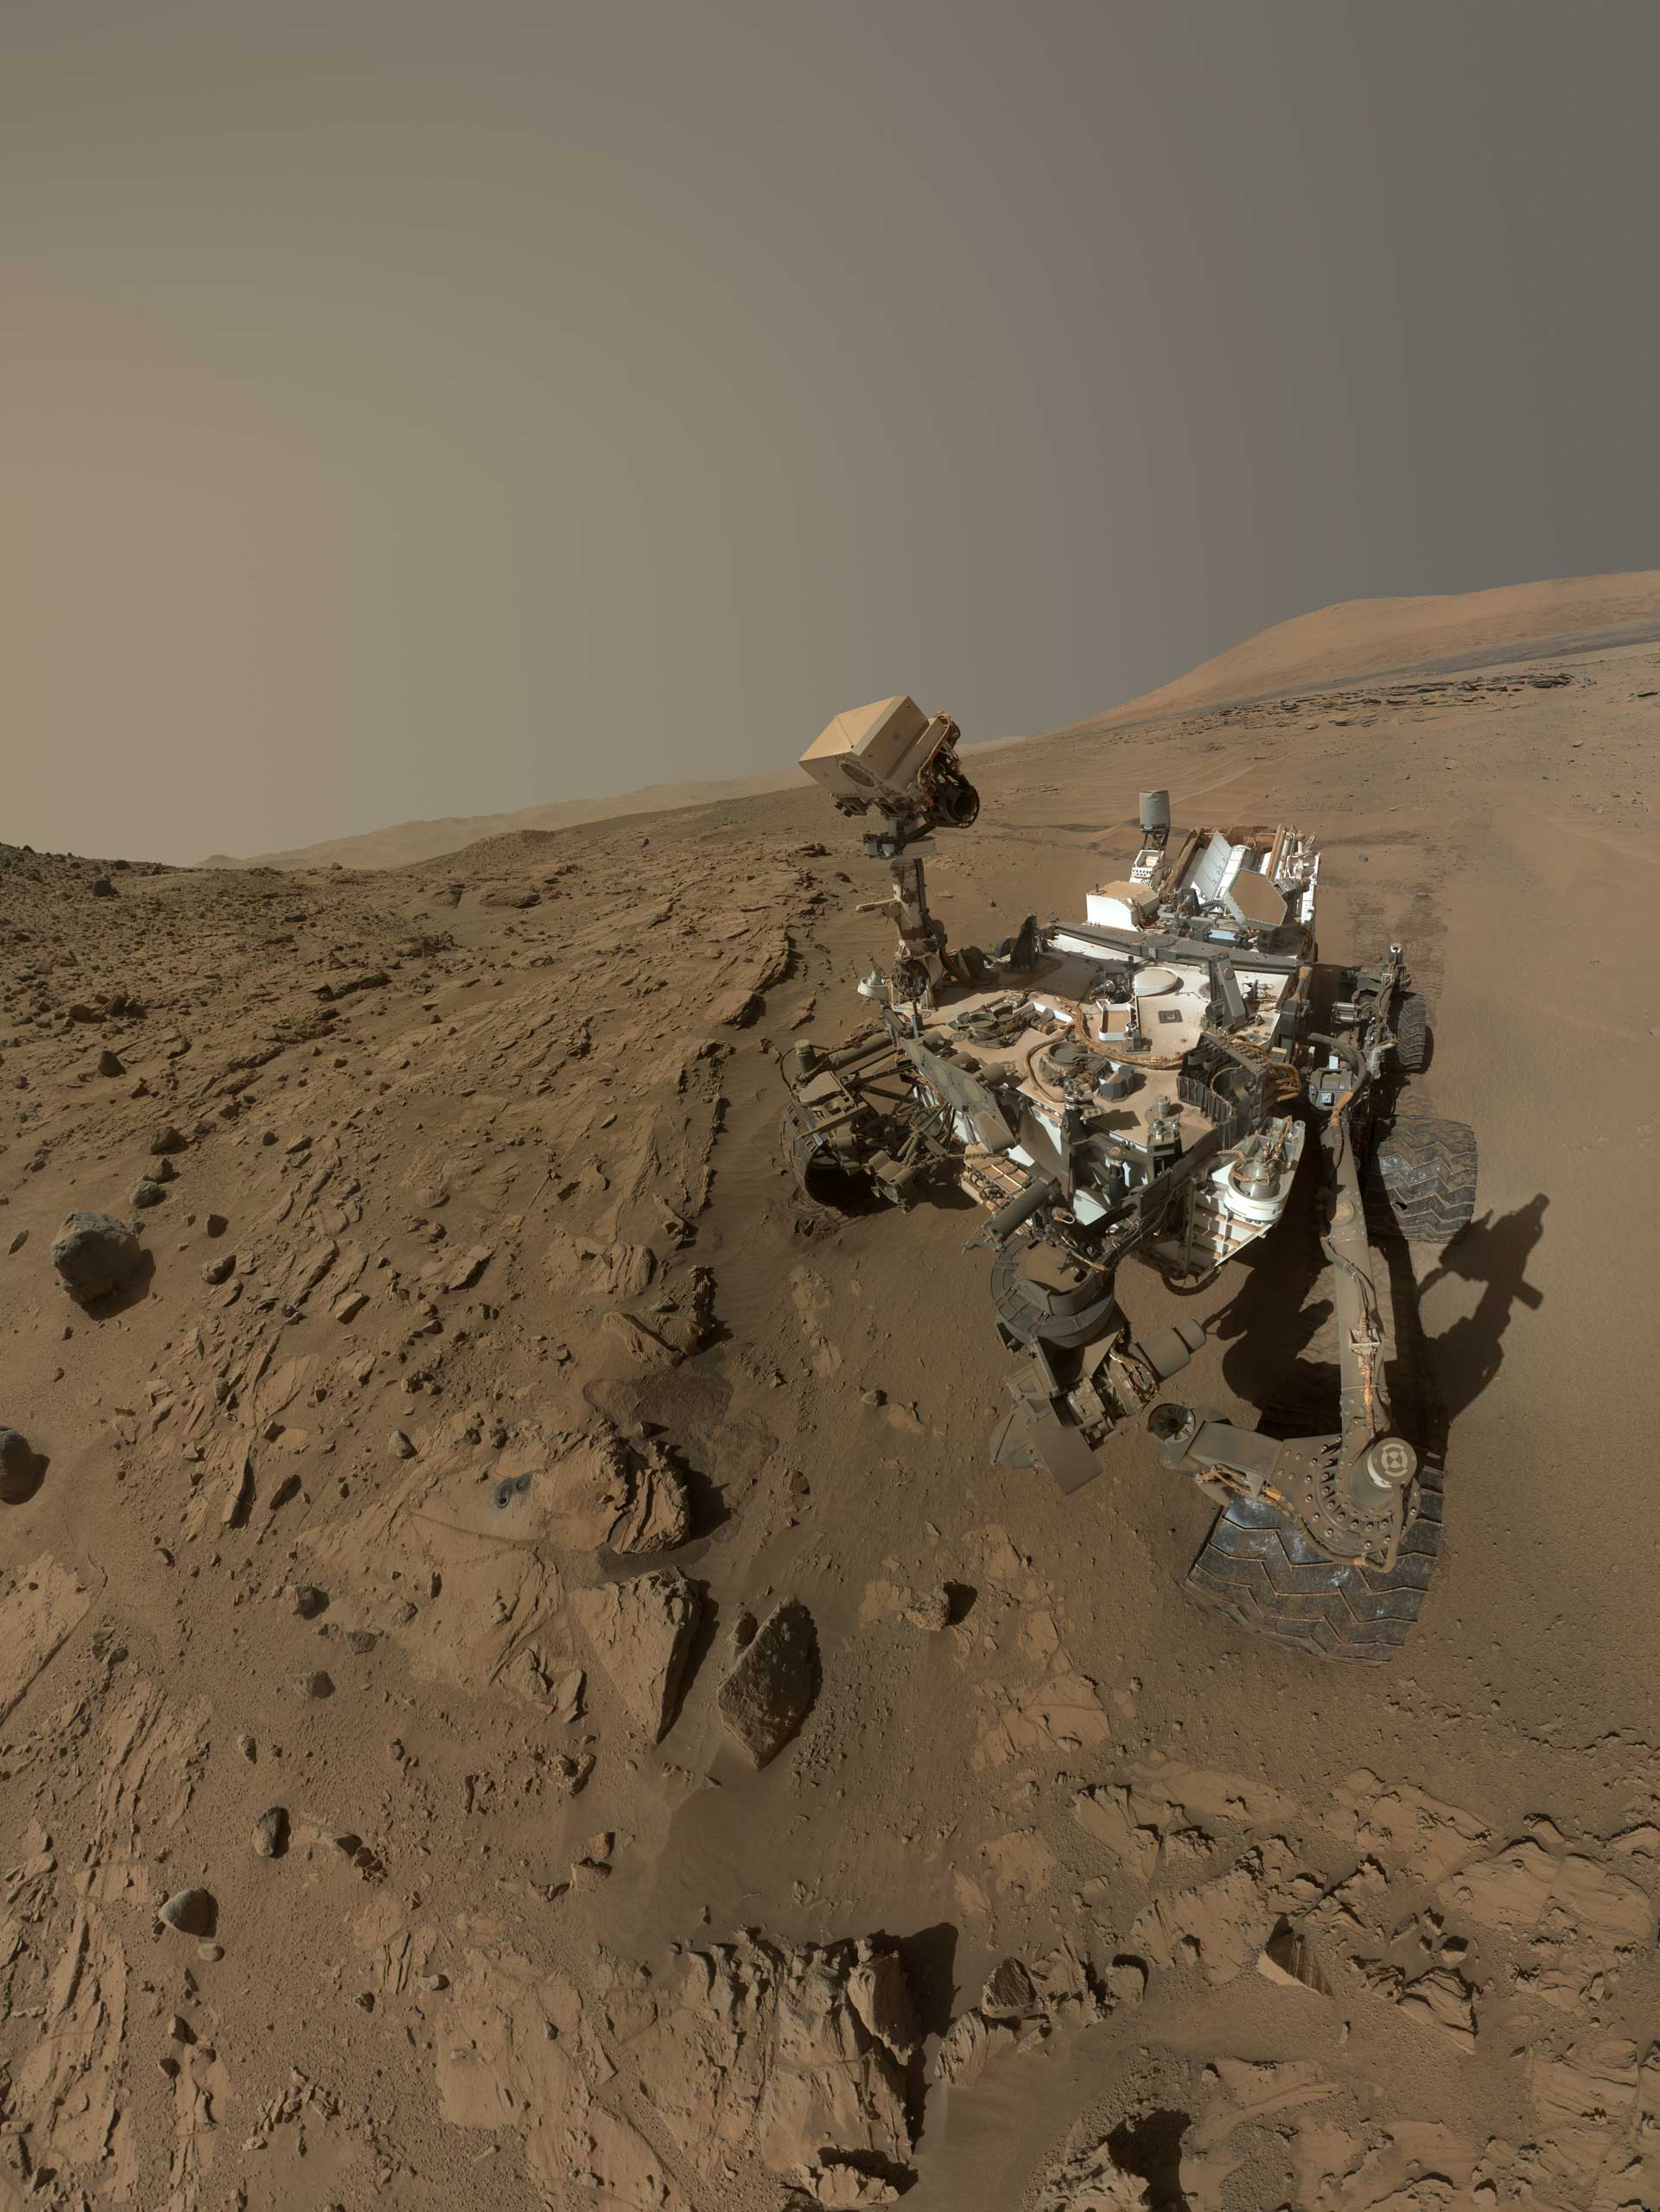 NASA's Curiosity Mars rover used the camera at the end of its arm in April and May 2014 to take dozens of component images combined into this selfie.